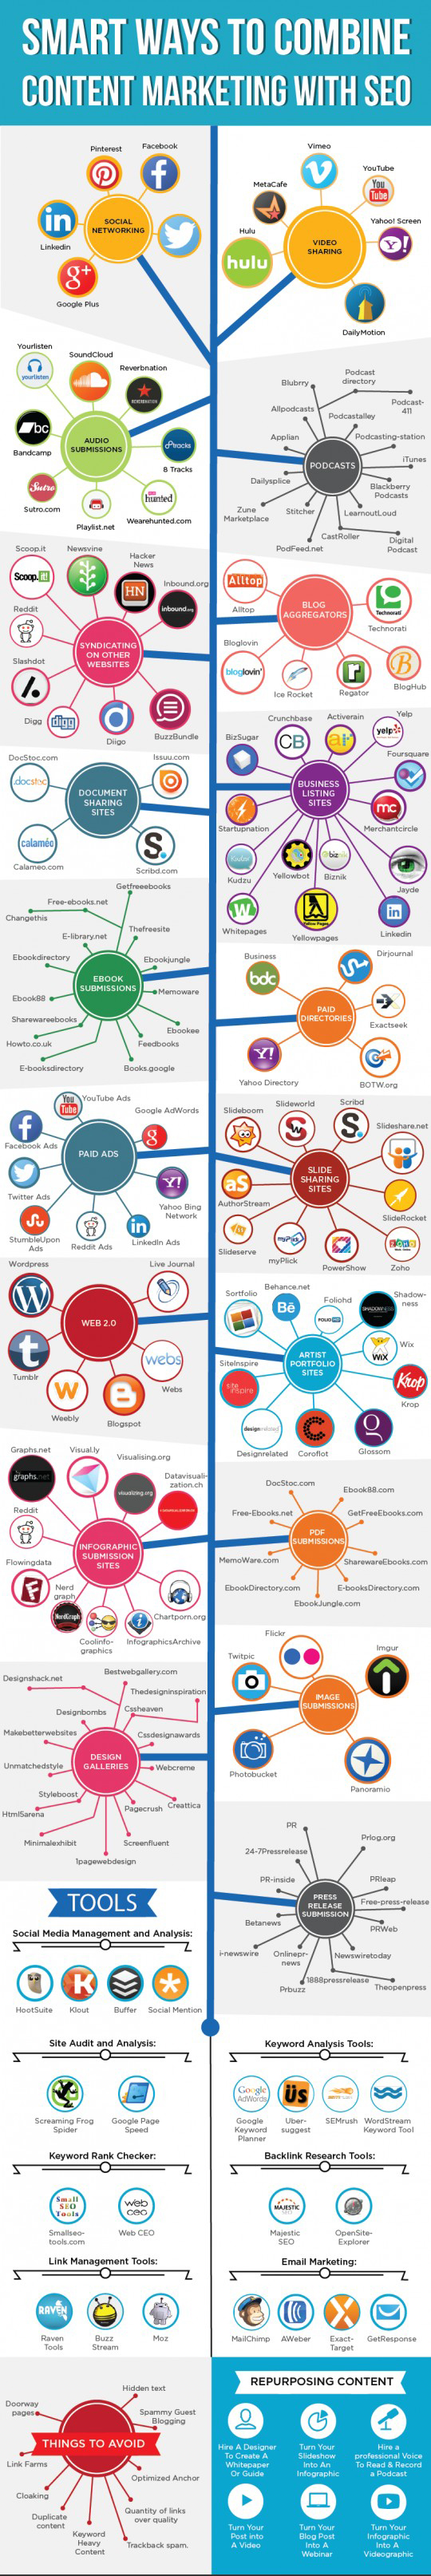 Content Marketing Tips: Infographic Data Source: Quicksprout, Buzzblogger & Google Images